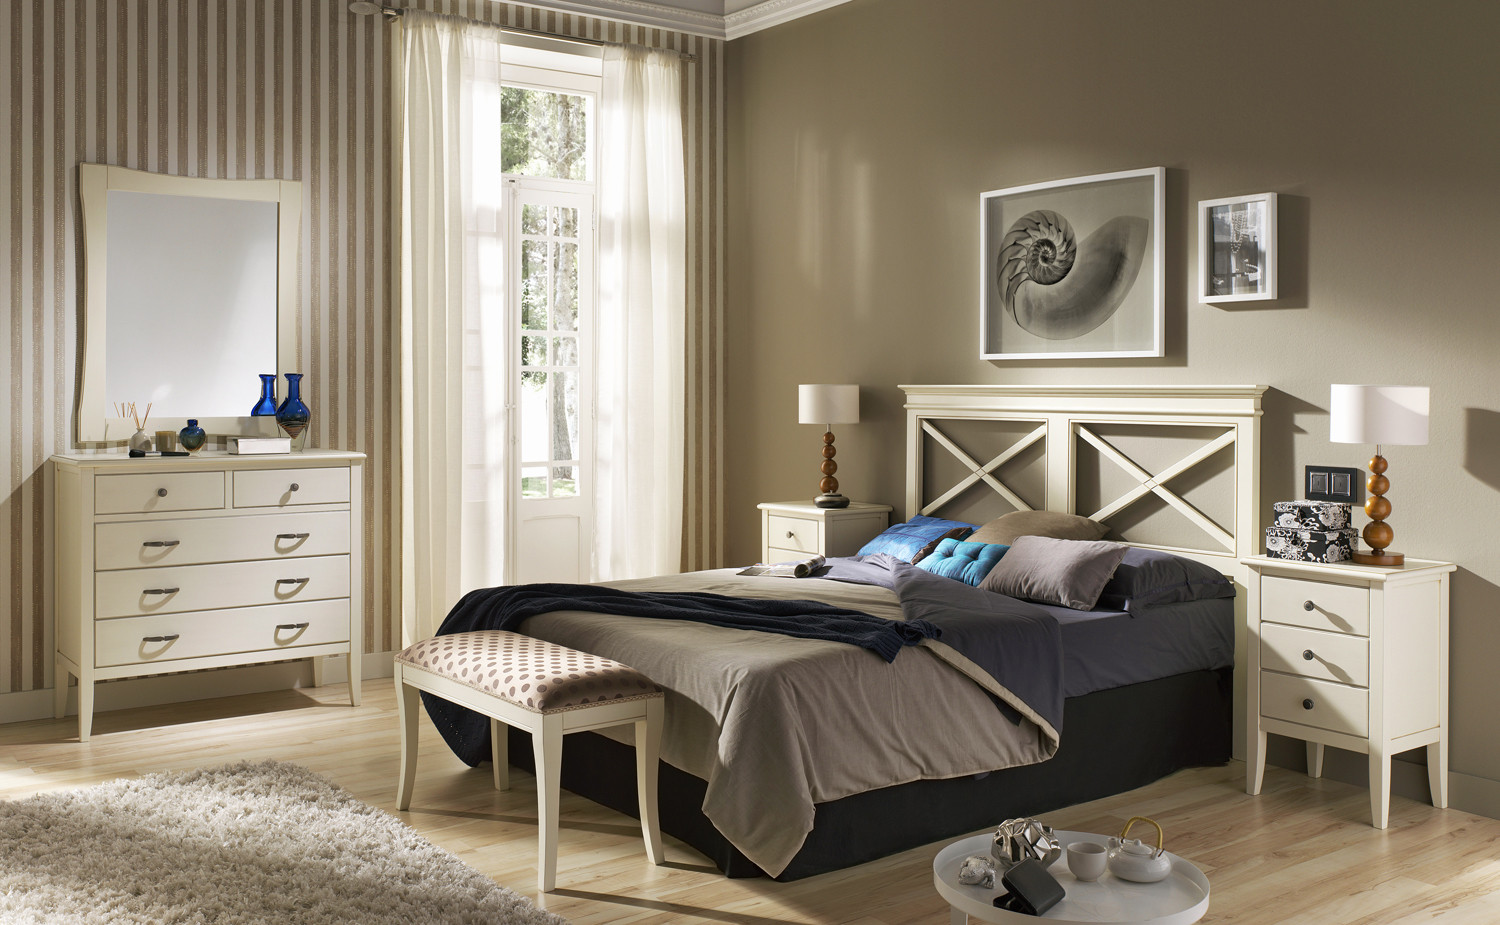 cabecero de cama en madera y con aspas para dormitorios matrimoniales. Black Bedroom Furniture Sets. Home Design Ideas